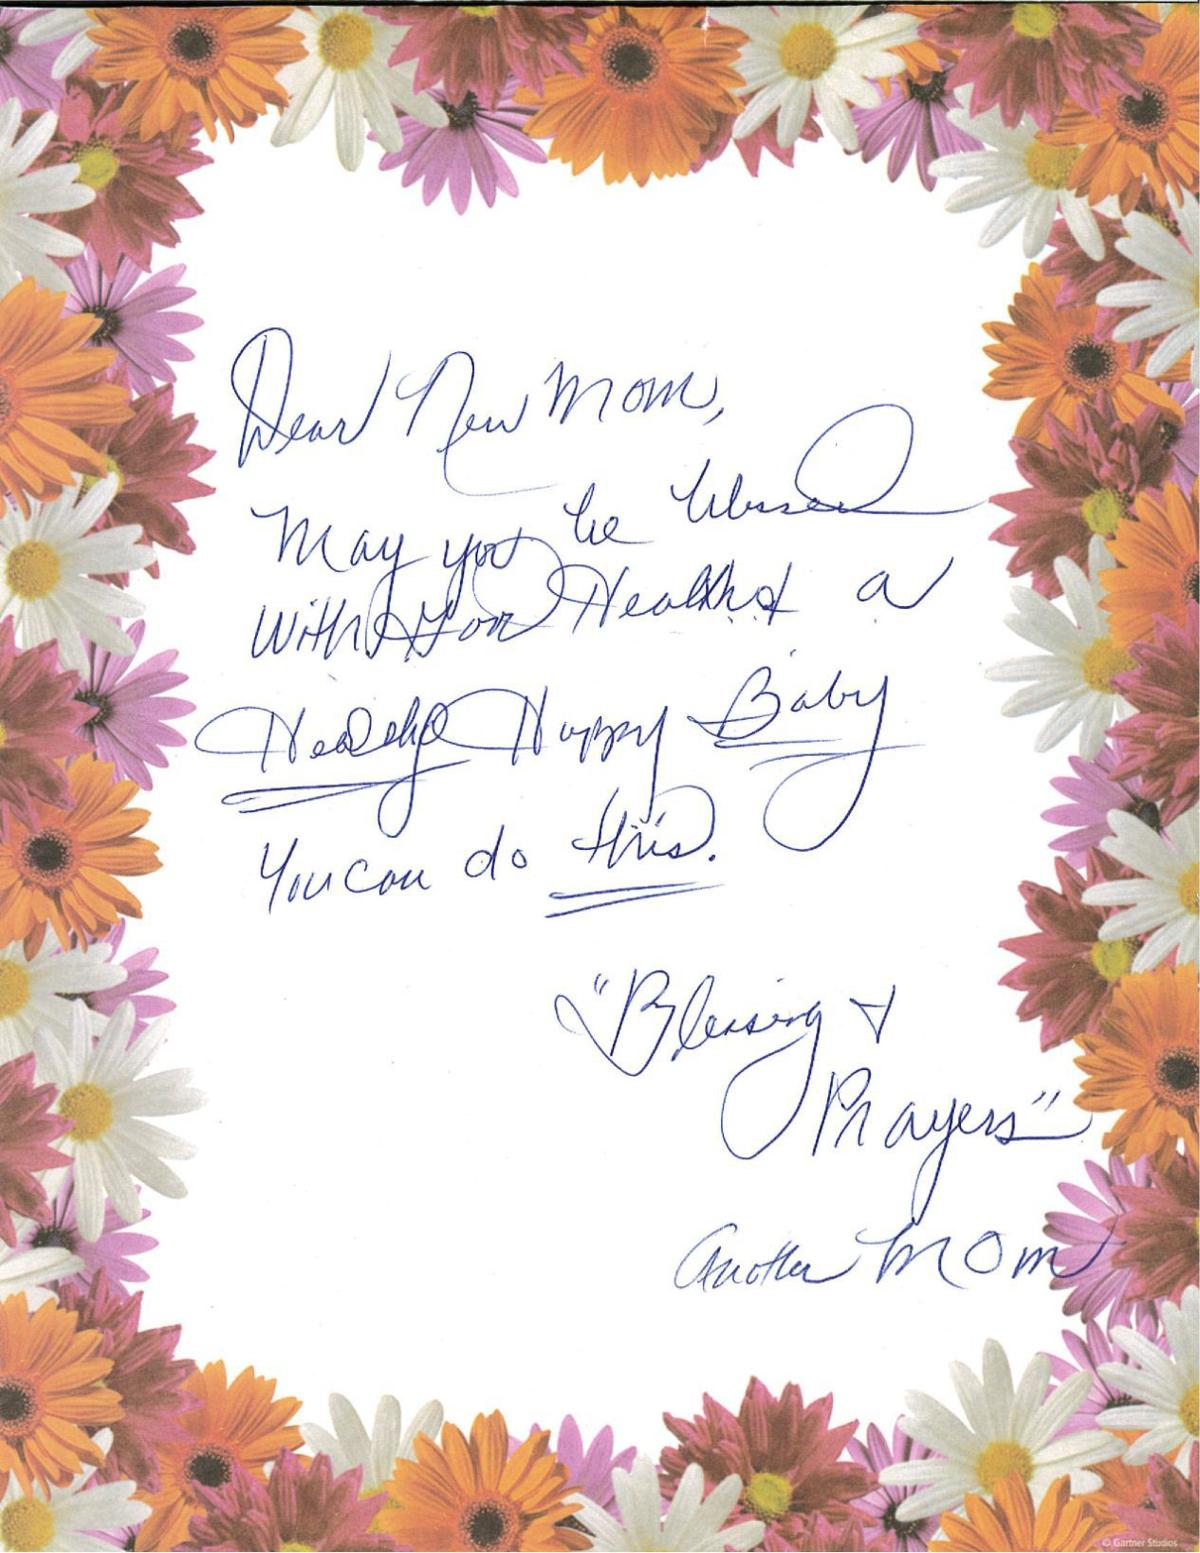 A local group makes a big push for Mothers Day 40 Letters of